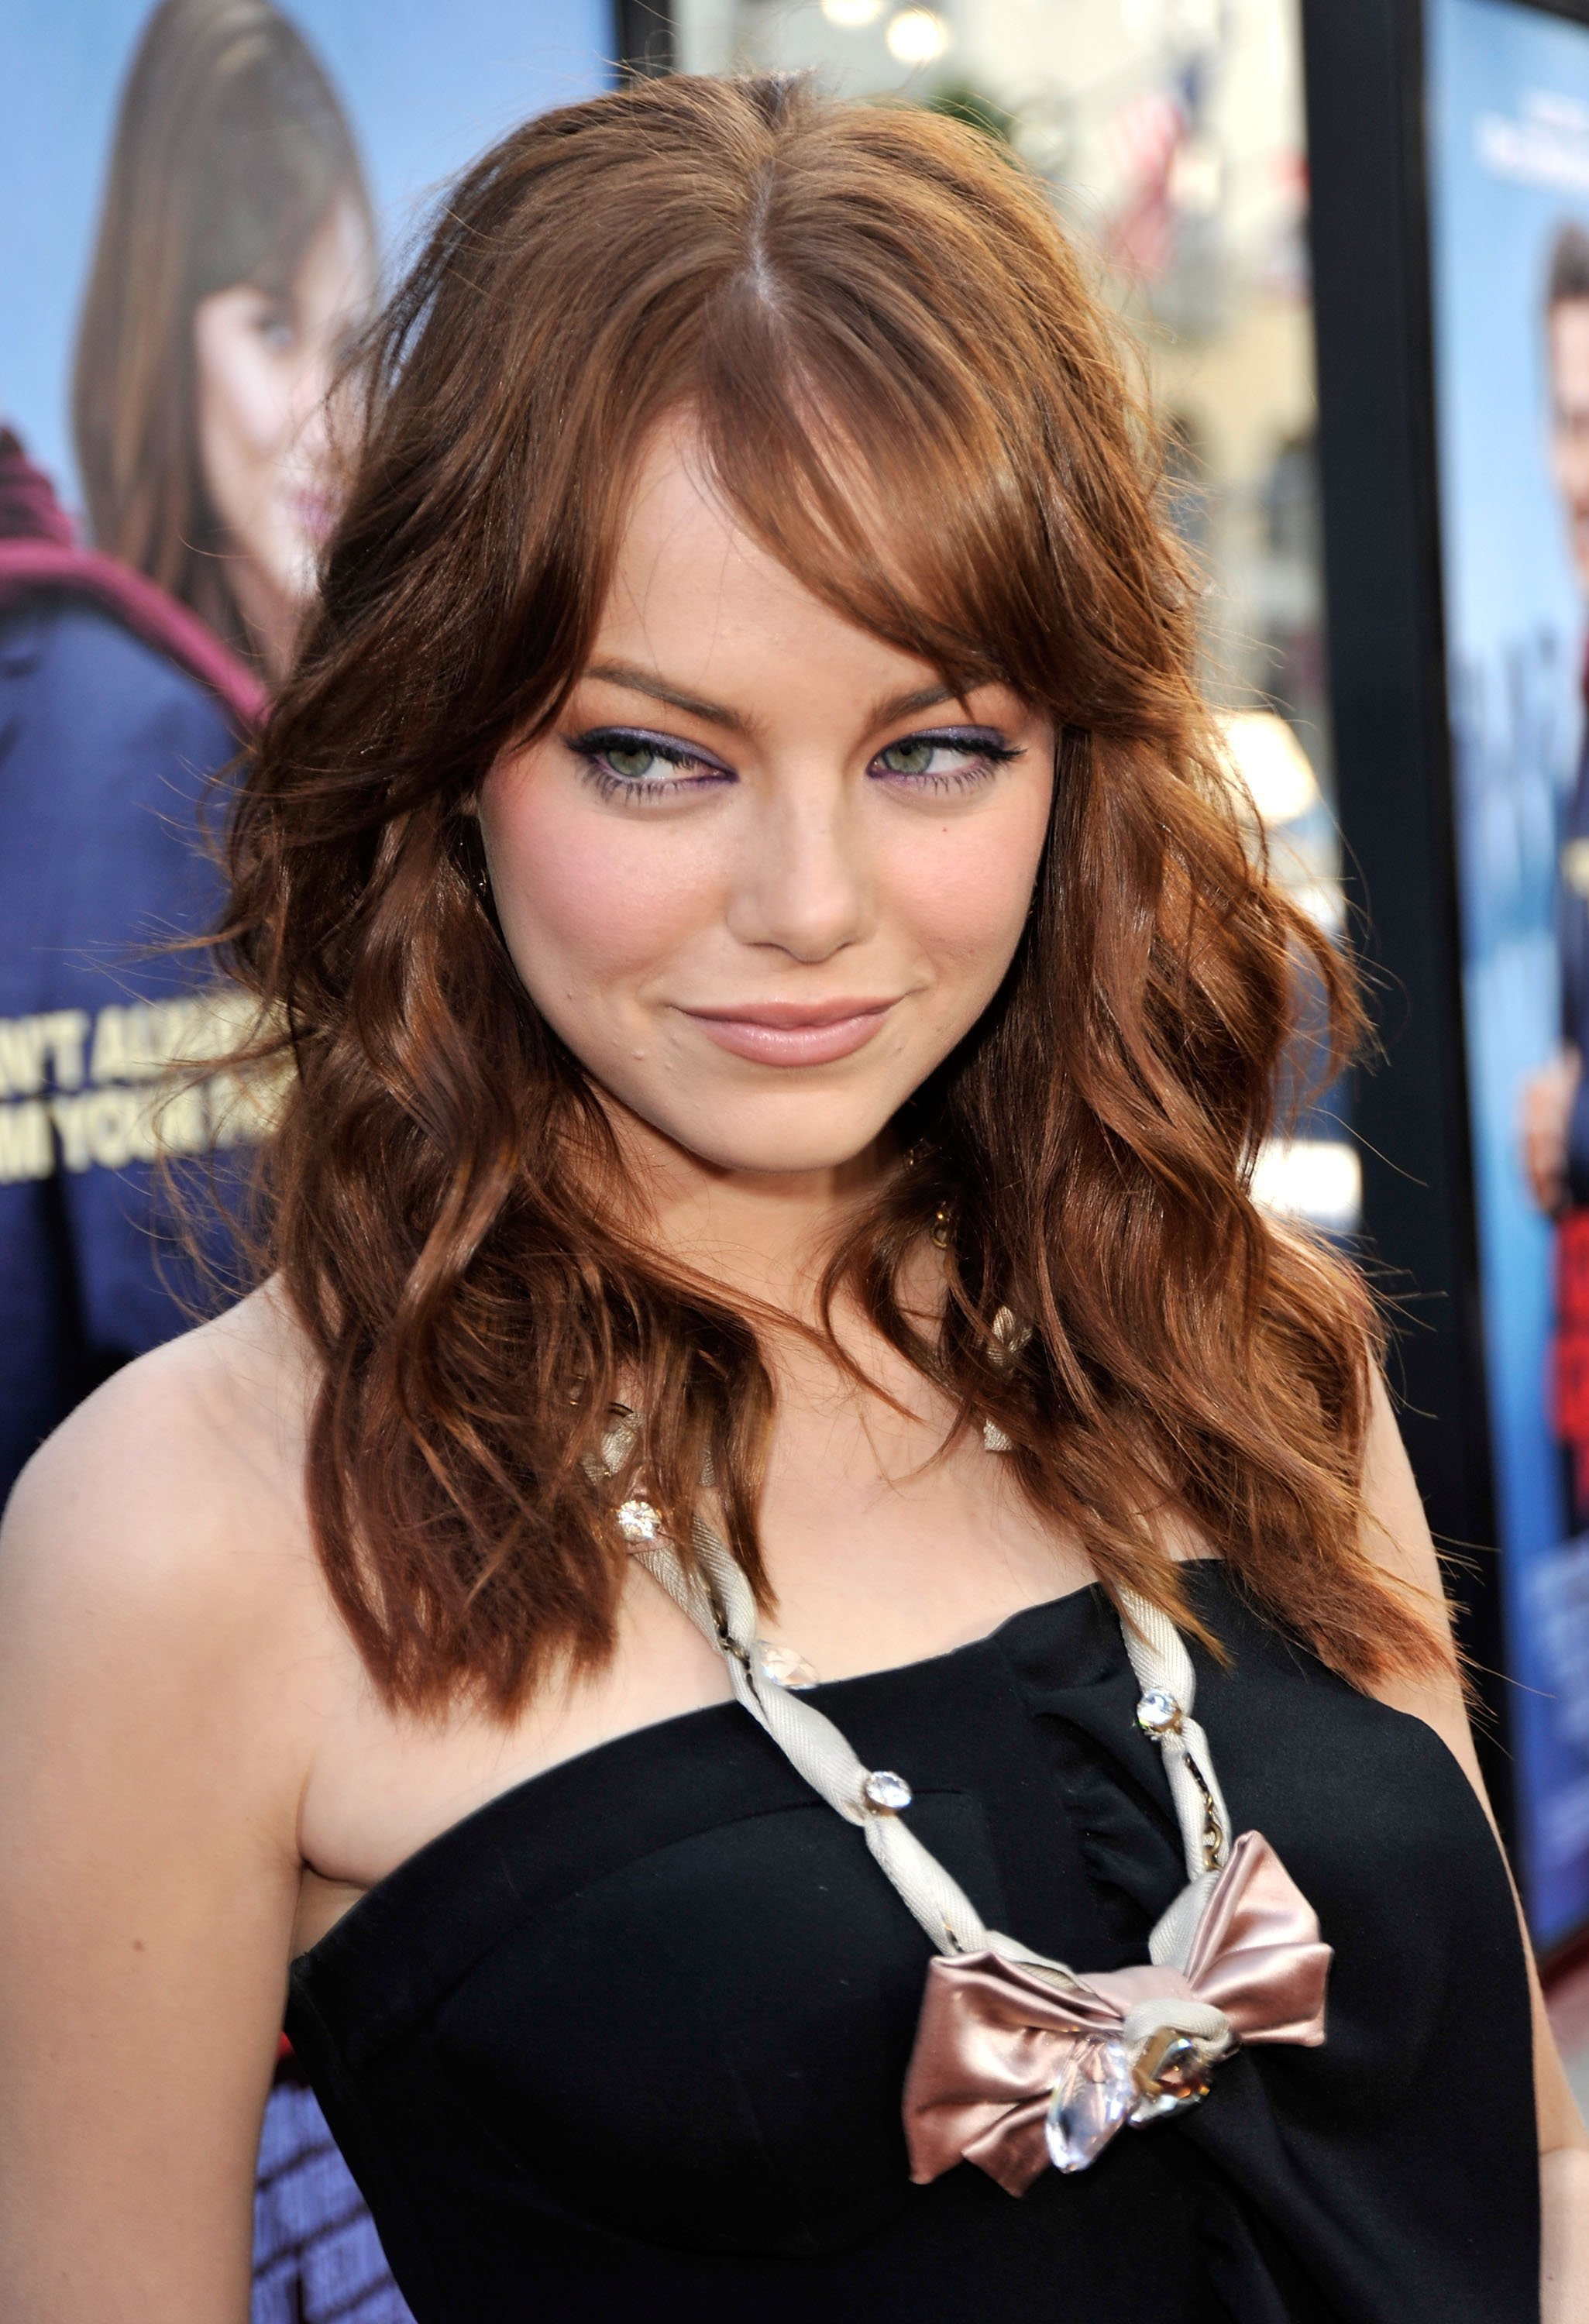 emma stone wallpapers high quality